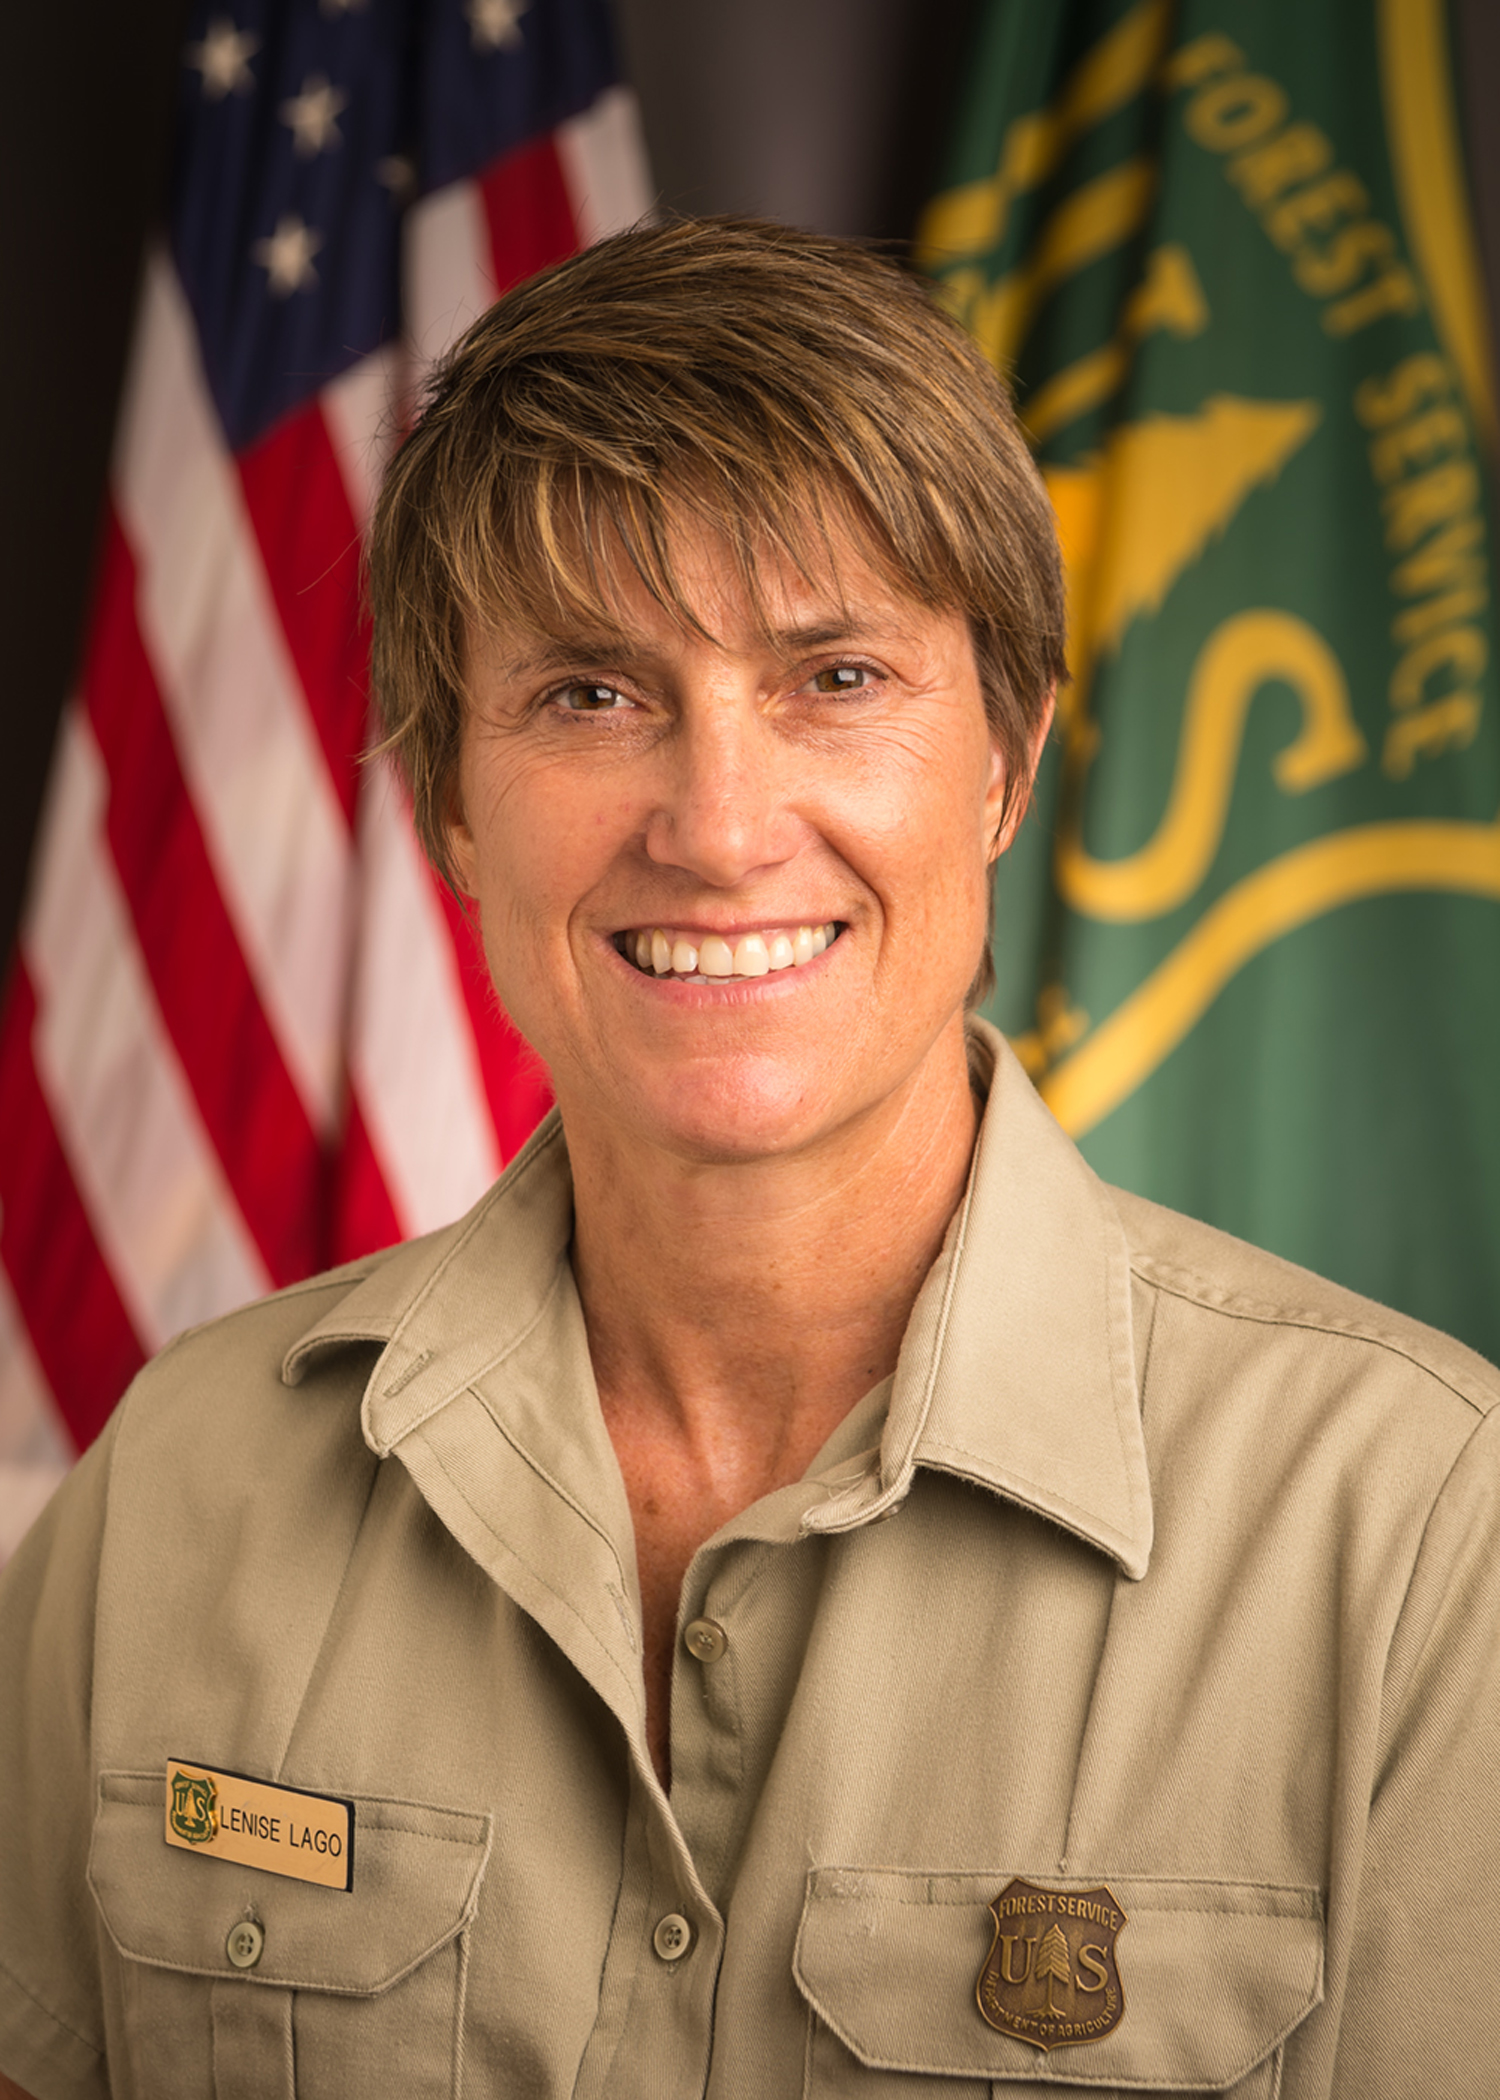 A picture of Lenise Lago in Forest Service uniform.